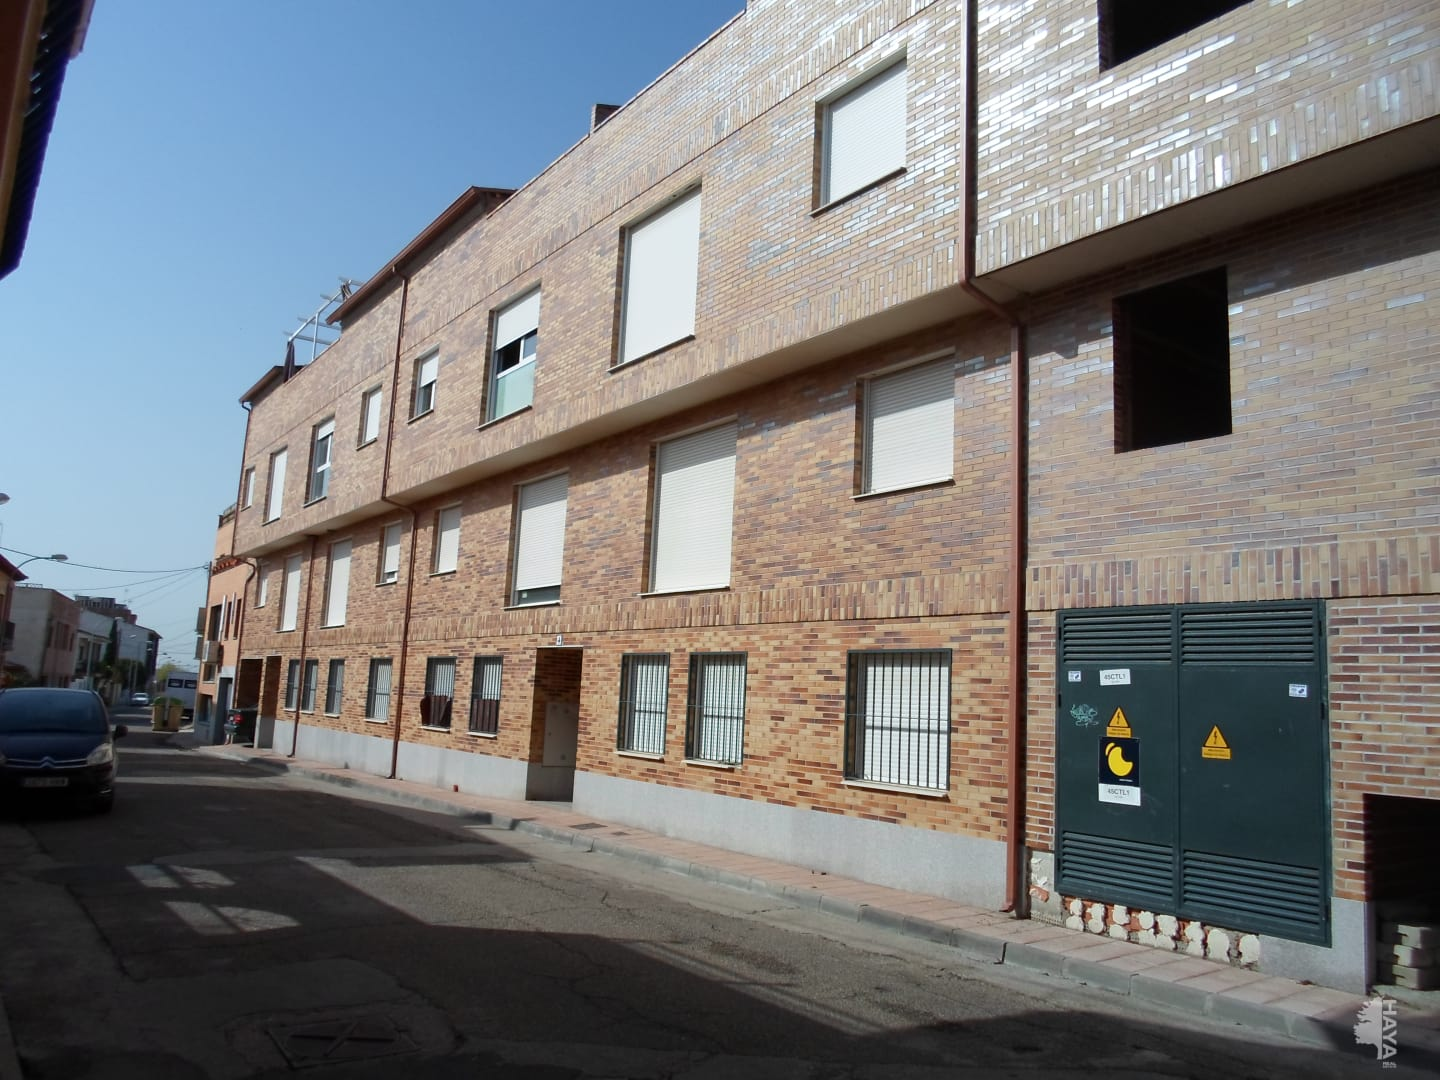 Local en venta en Camarena, Toledo, Calle Real, 72.200 €, 135 m2